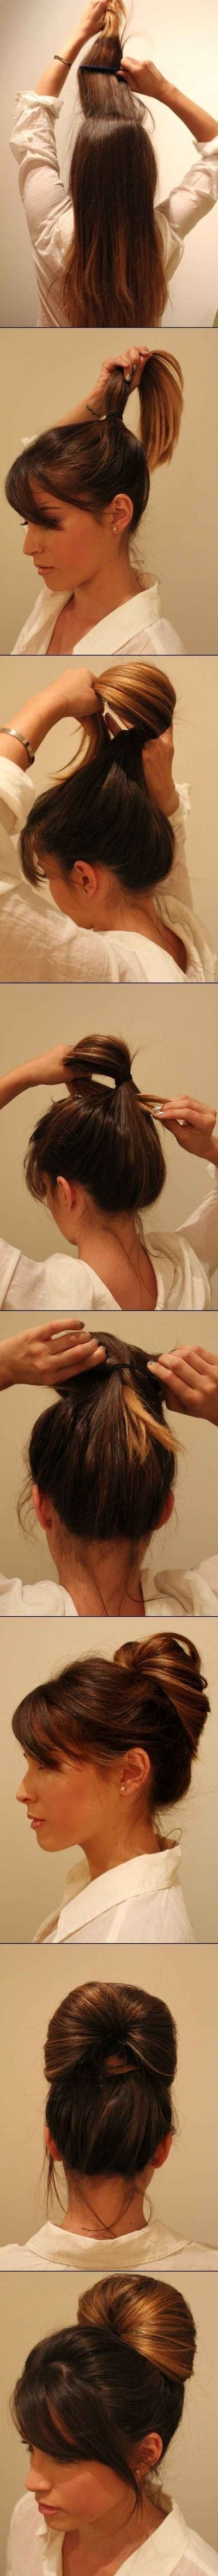 16 Gorgeous Hair Styles for Lazy Girls like Me ... → Hair